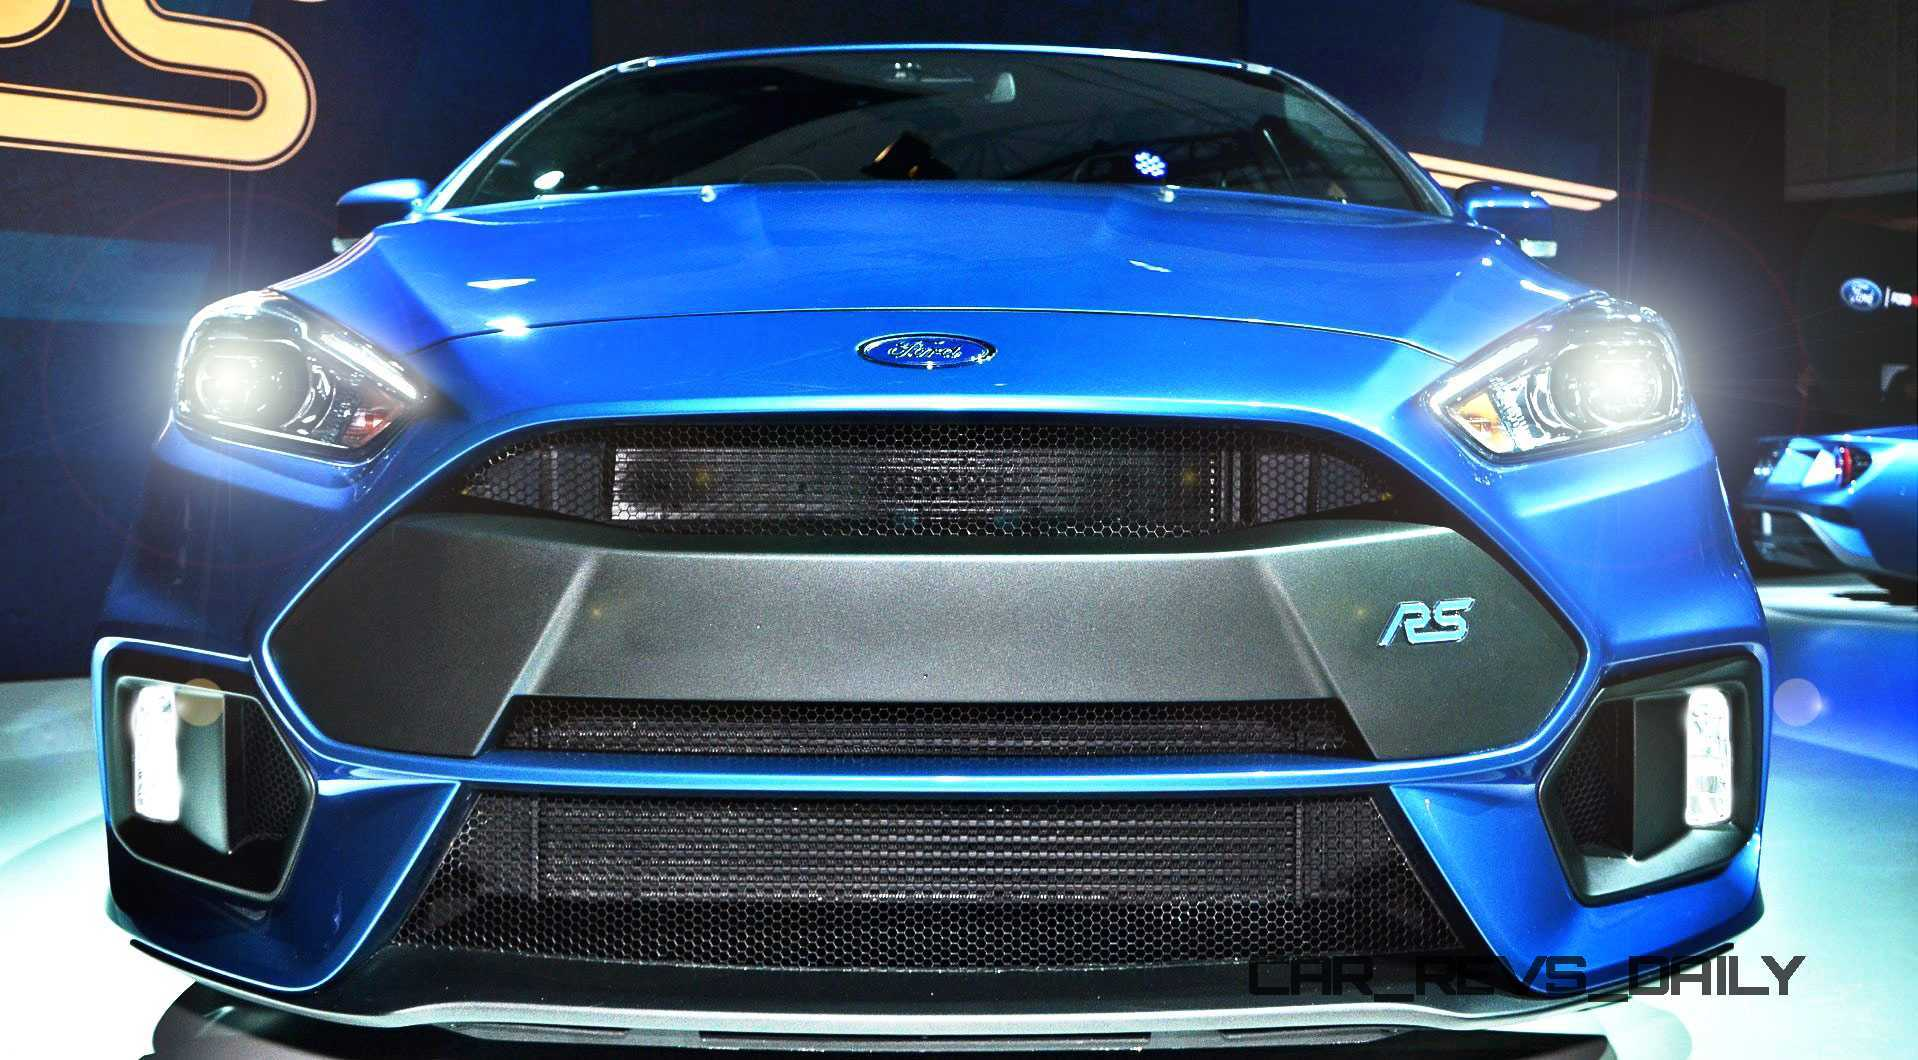 Nitrous Blue 2016 Ford Focus RS Coming to NYC Next Week! USA Showrooms